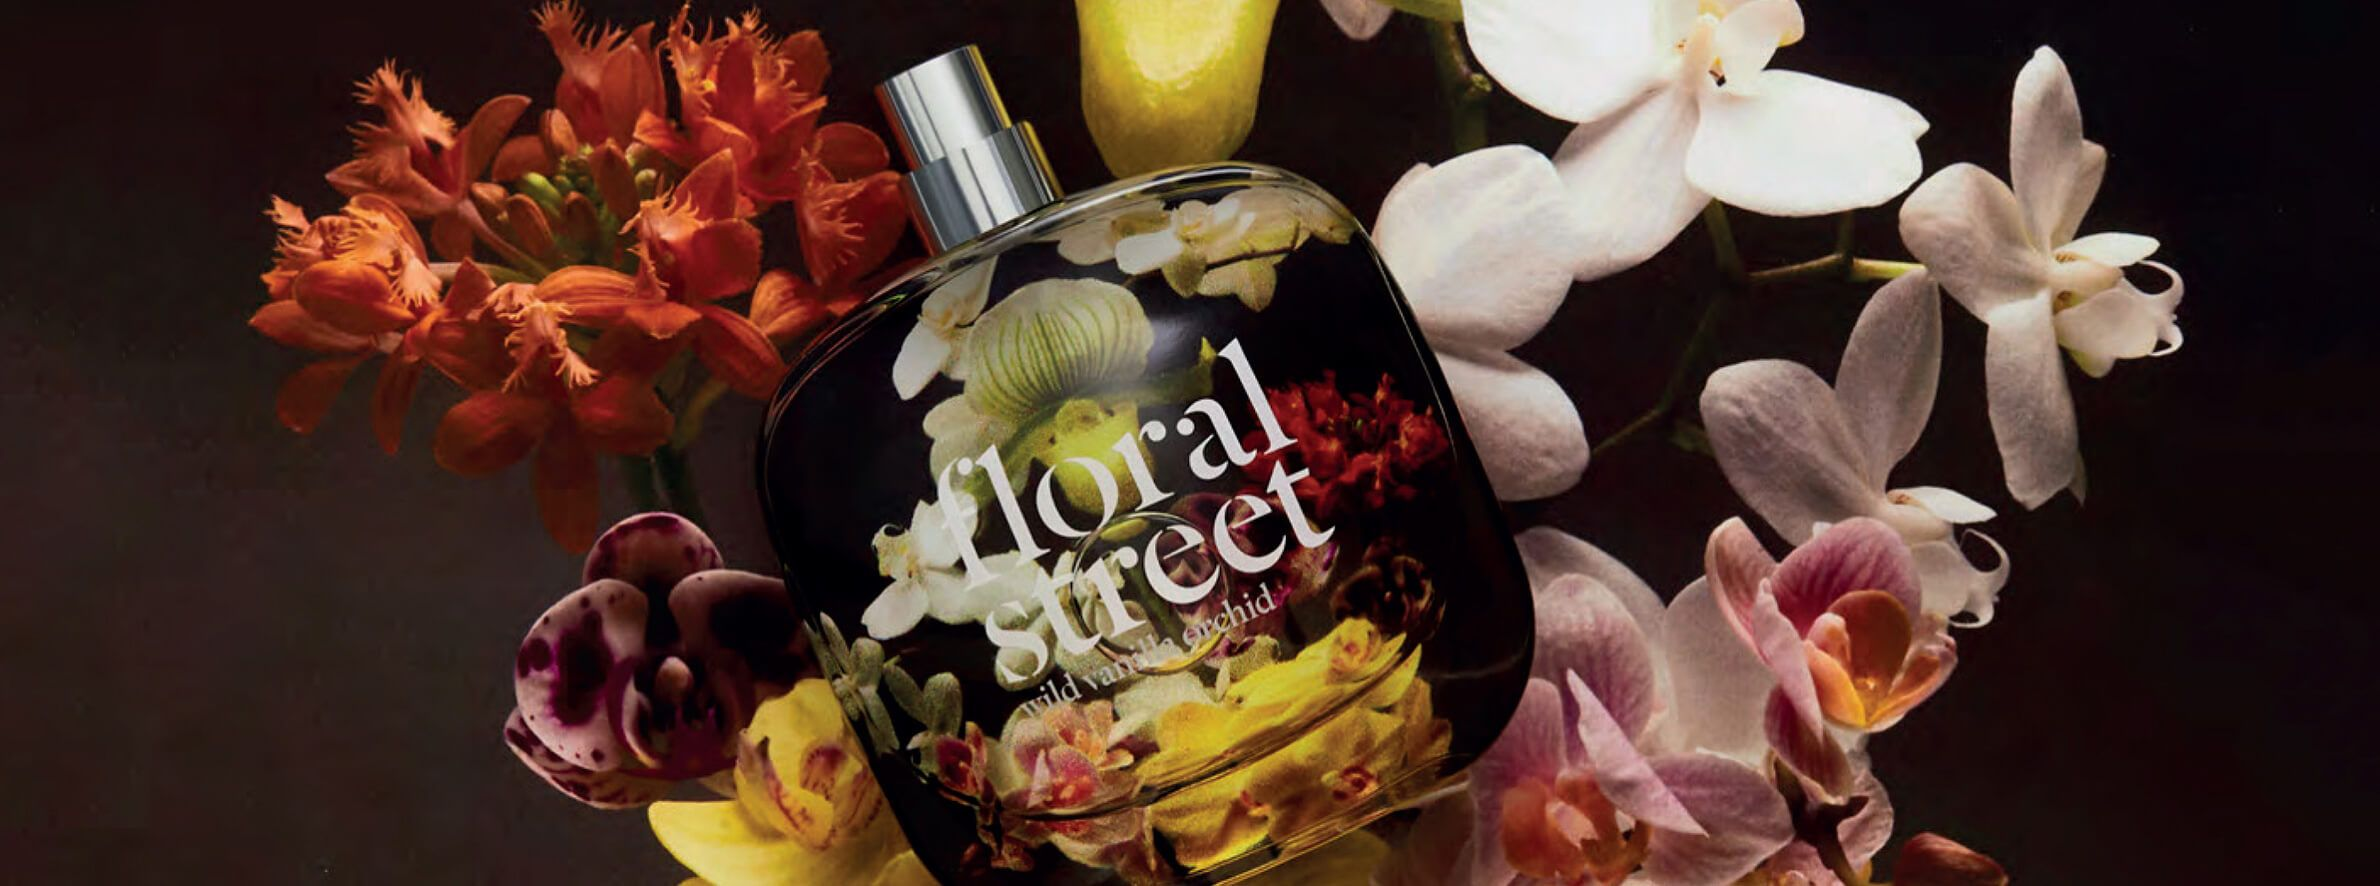 Floral Street Fragrances